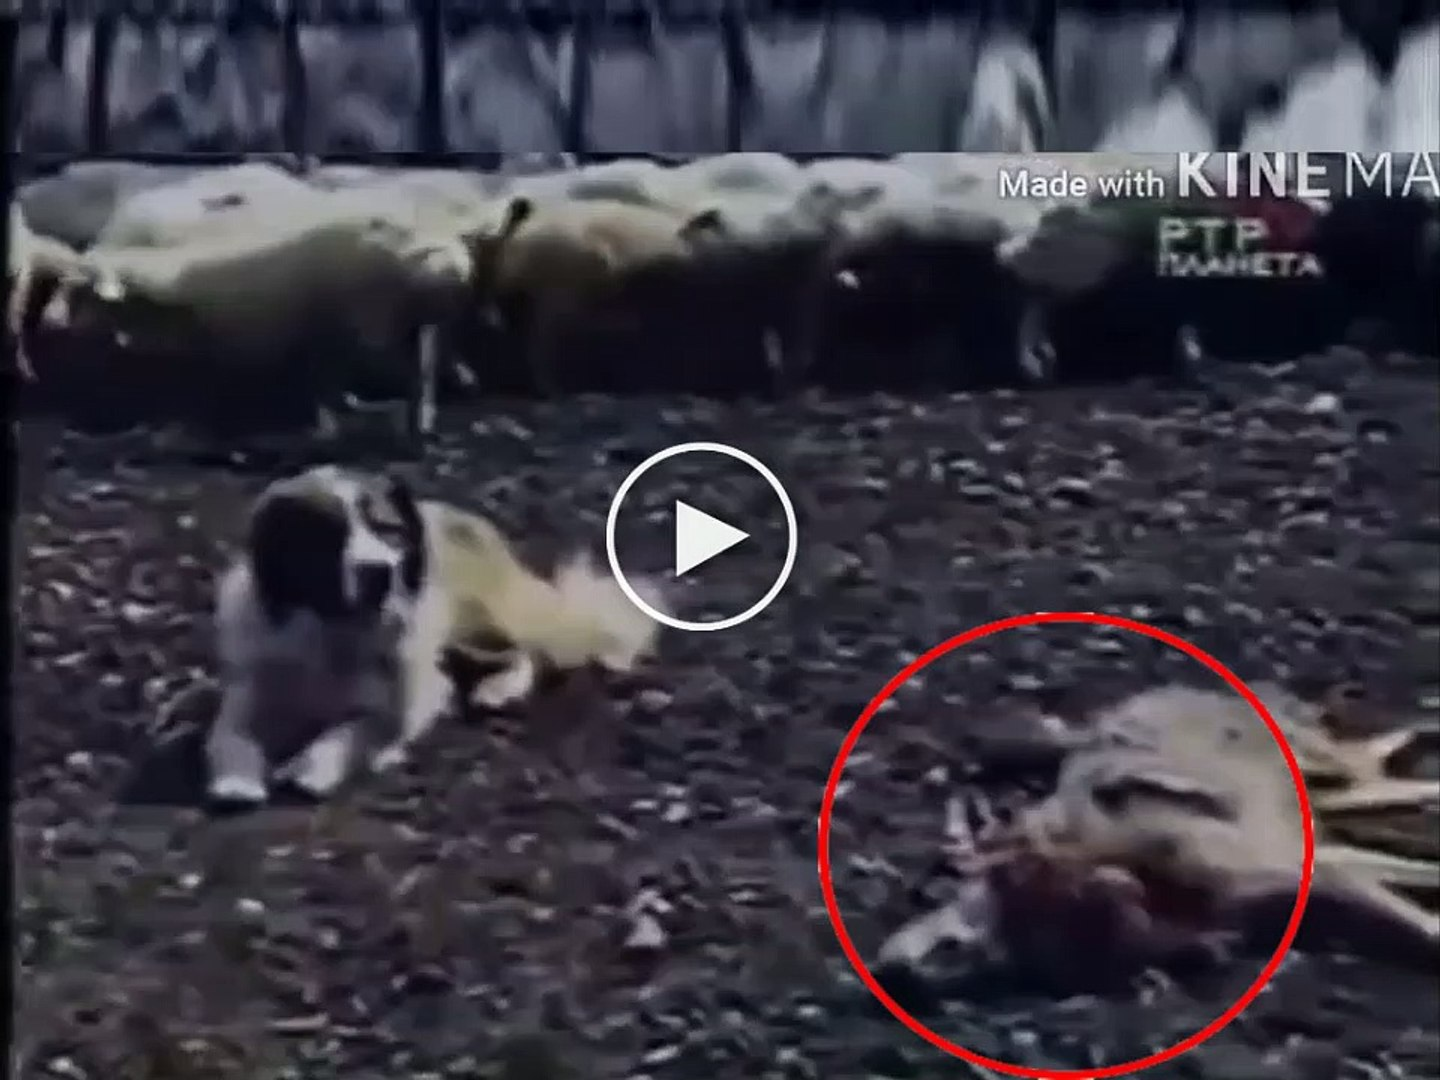 ALABAY COBAN KOPEGi KURT KARSISINDA - COUCASiAN SHEPHERD DOG and WOLF ATTACK